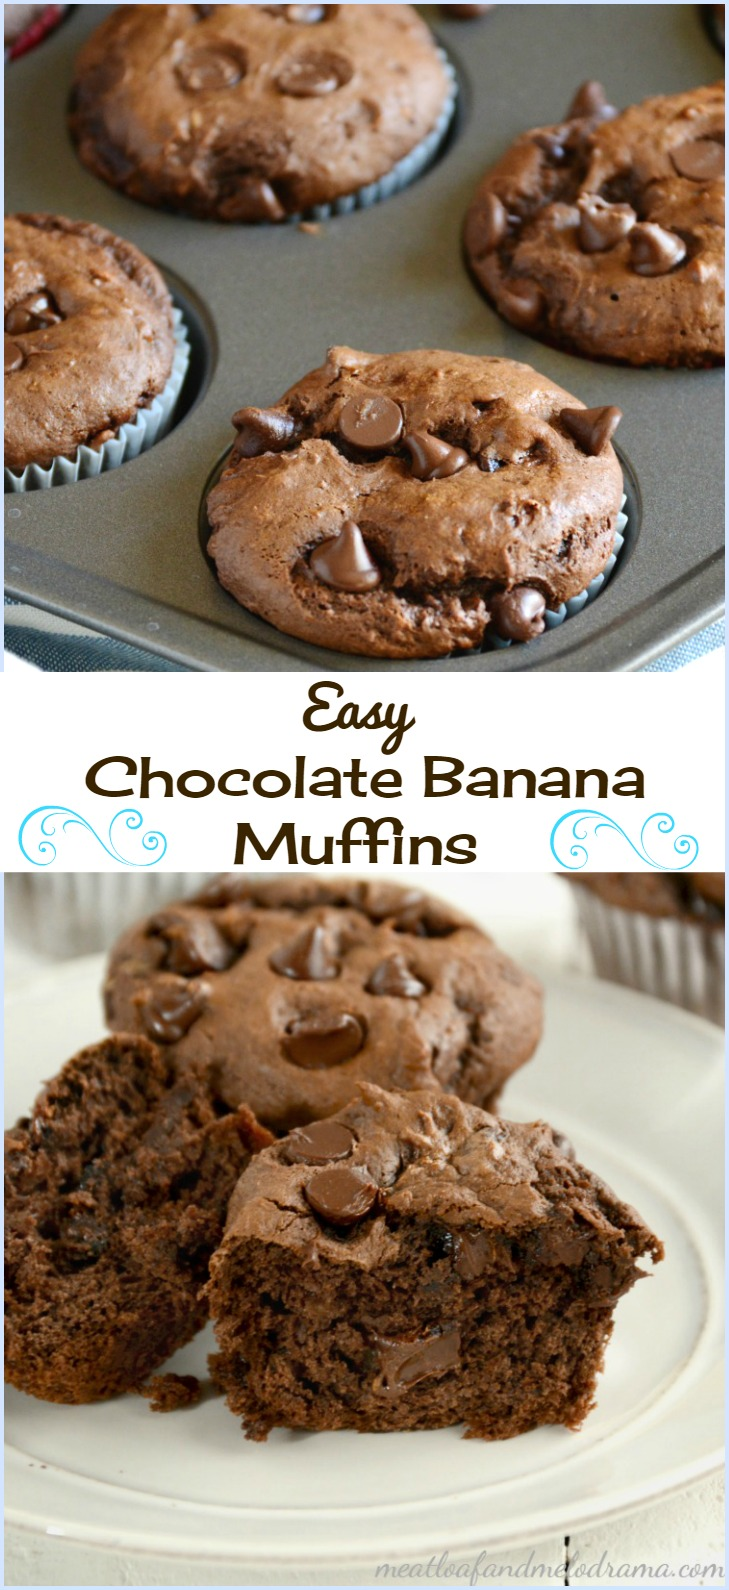 Easy Chocolate Banana Muffins Meatloaf And Melodrama